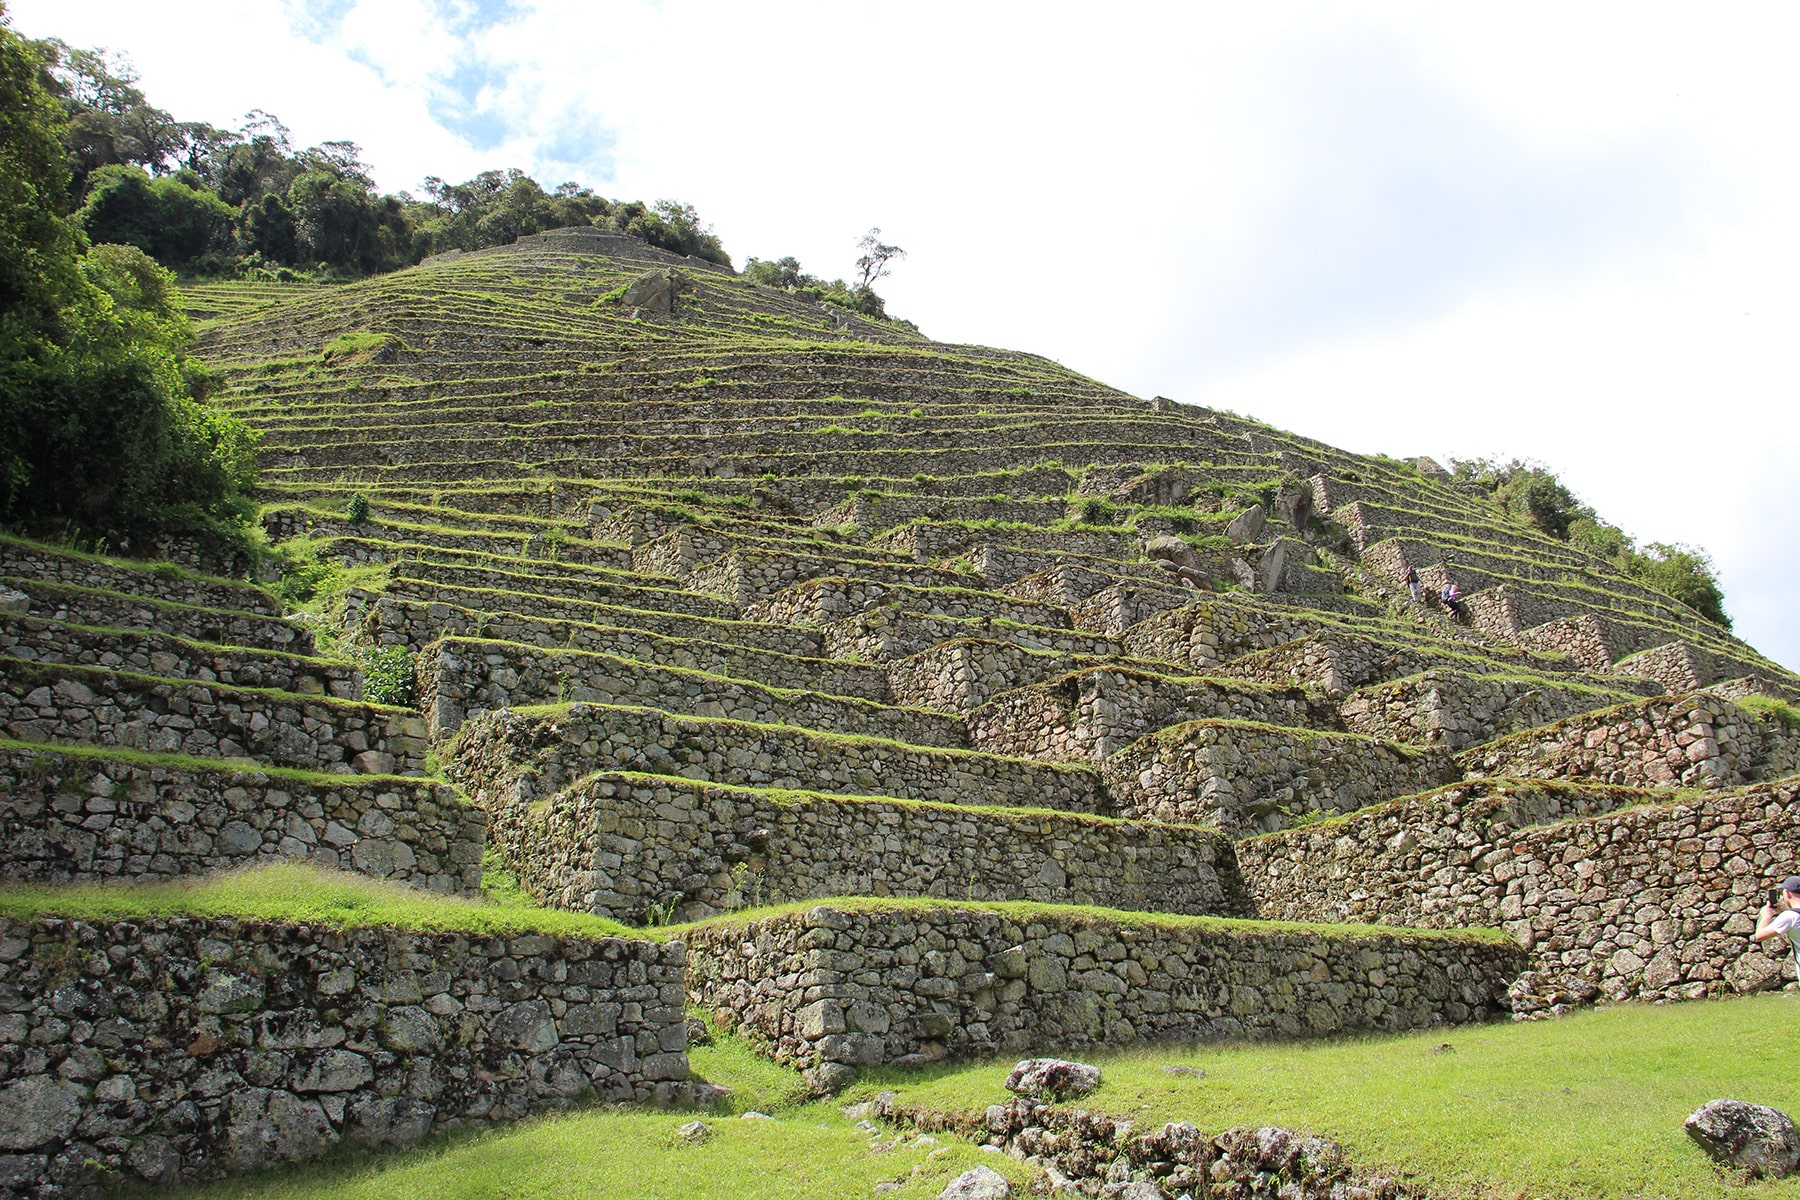 Intipata site with terraces